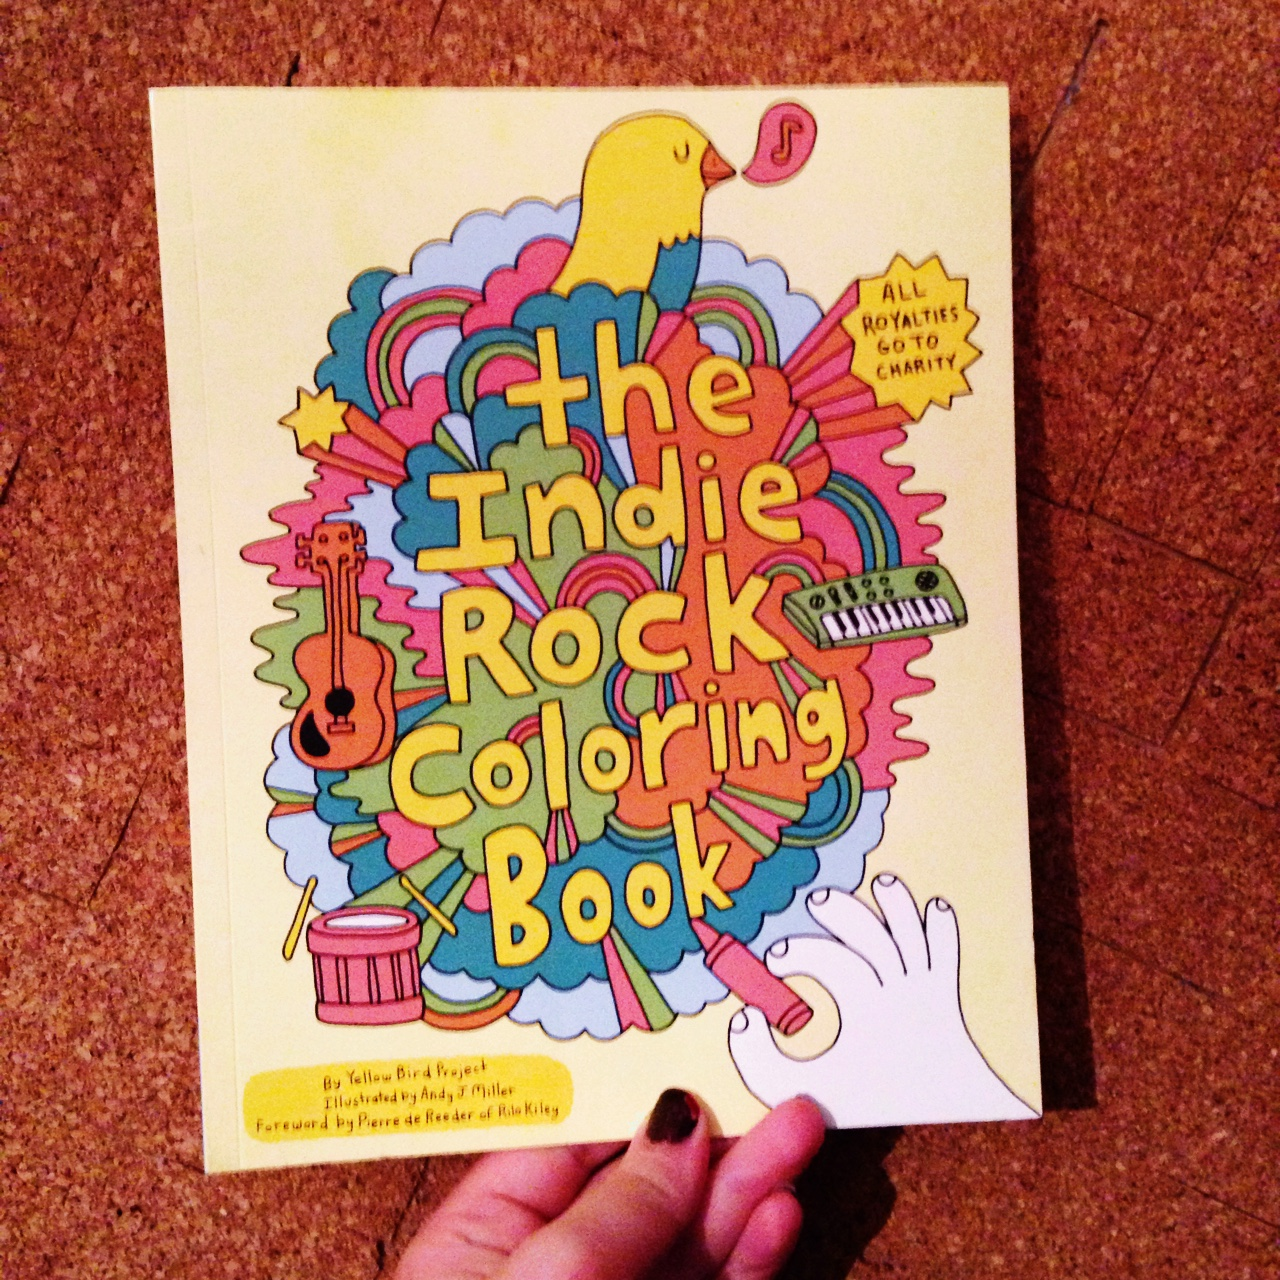 The Indie Rock Coloring Book by Yellow Bird Project.... - Depop